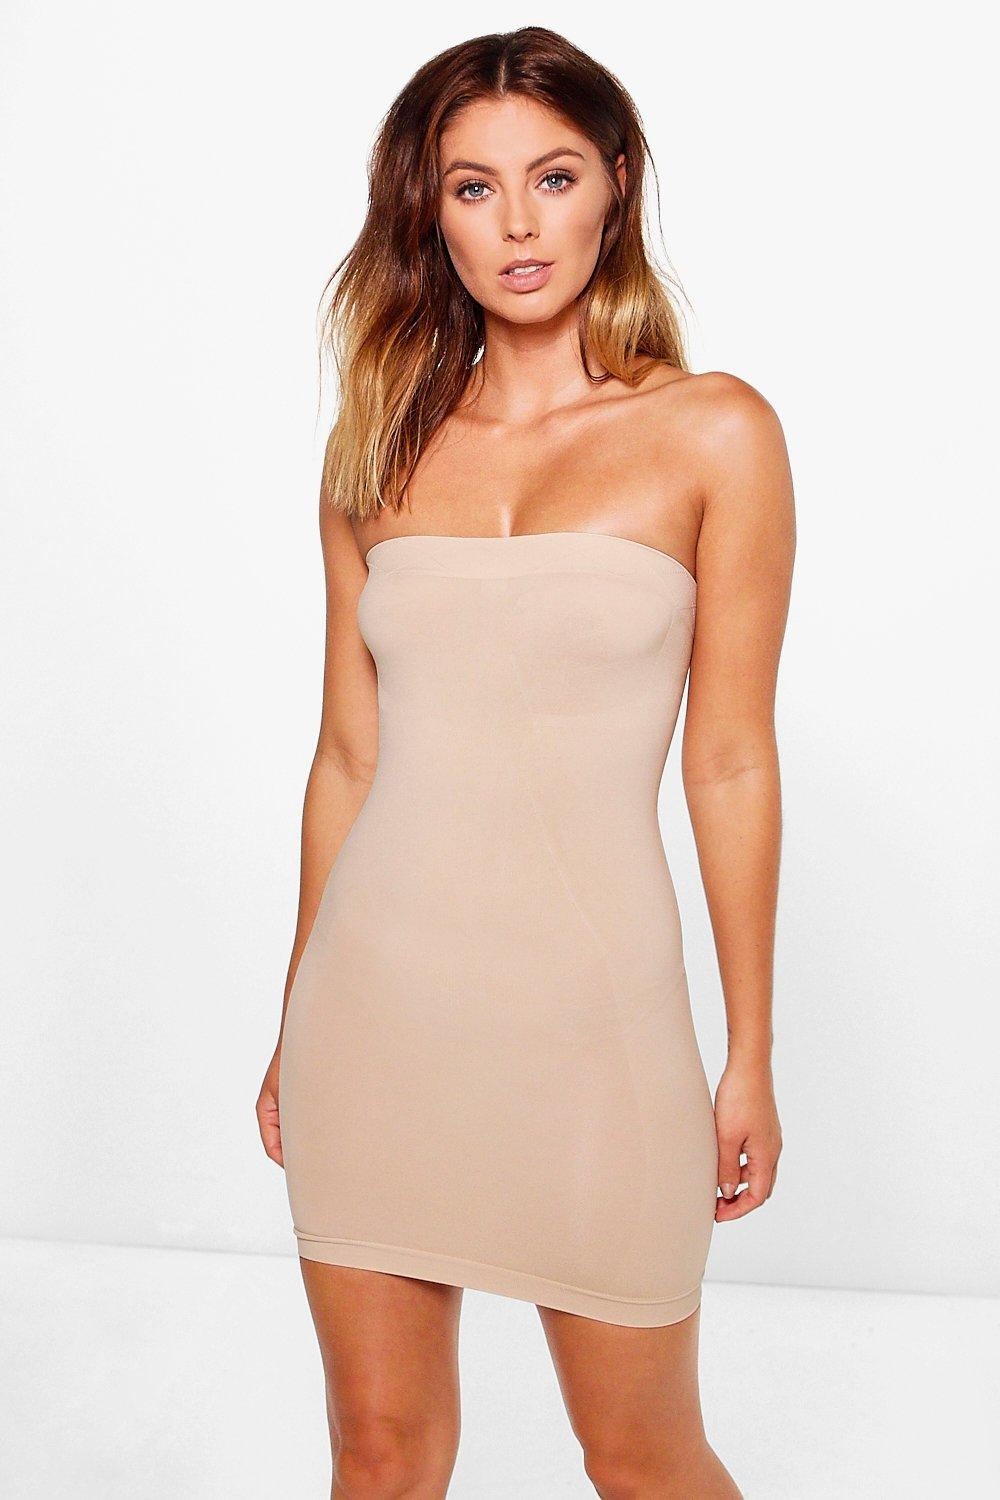 10b6f912f99a Womens Nude Jasmine Shapewear Slip Dress. Hover to zoom